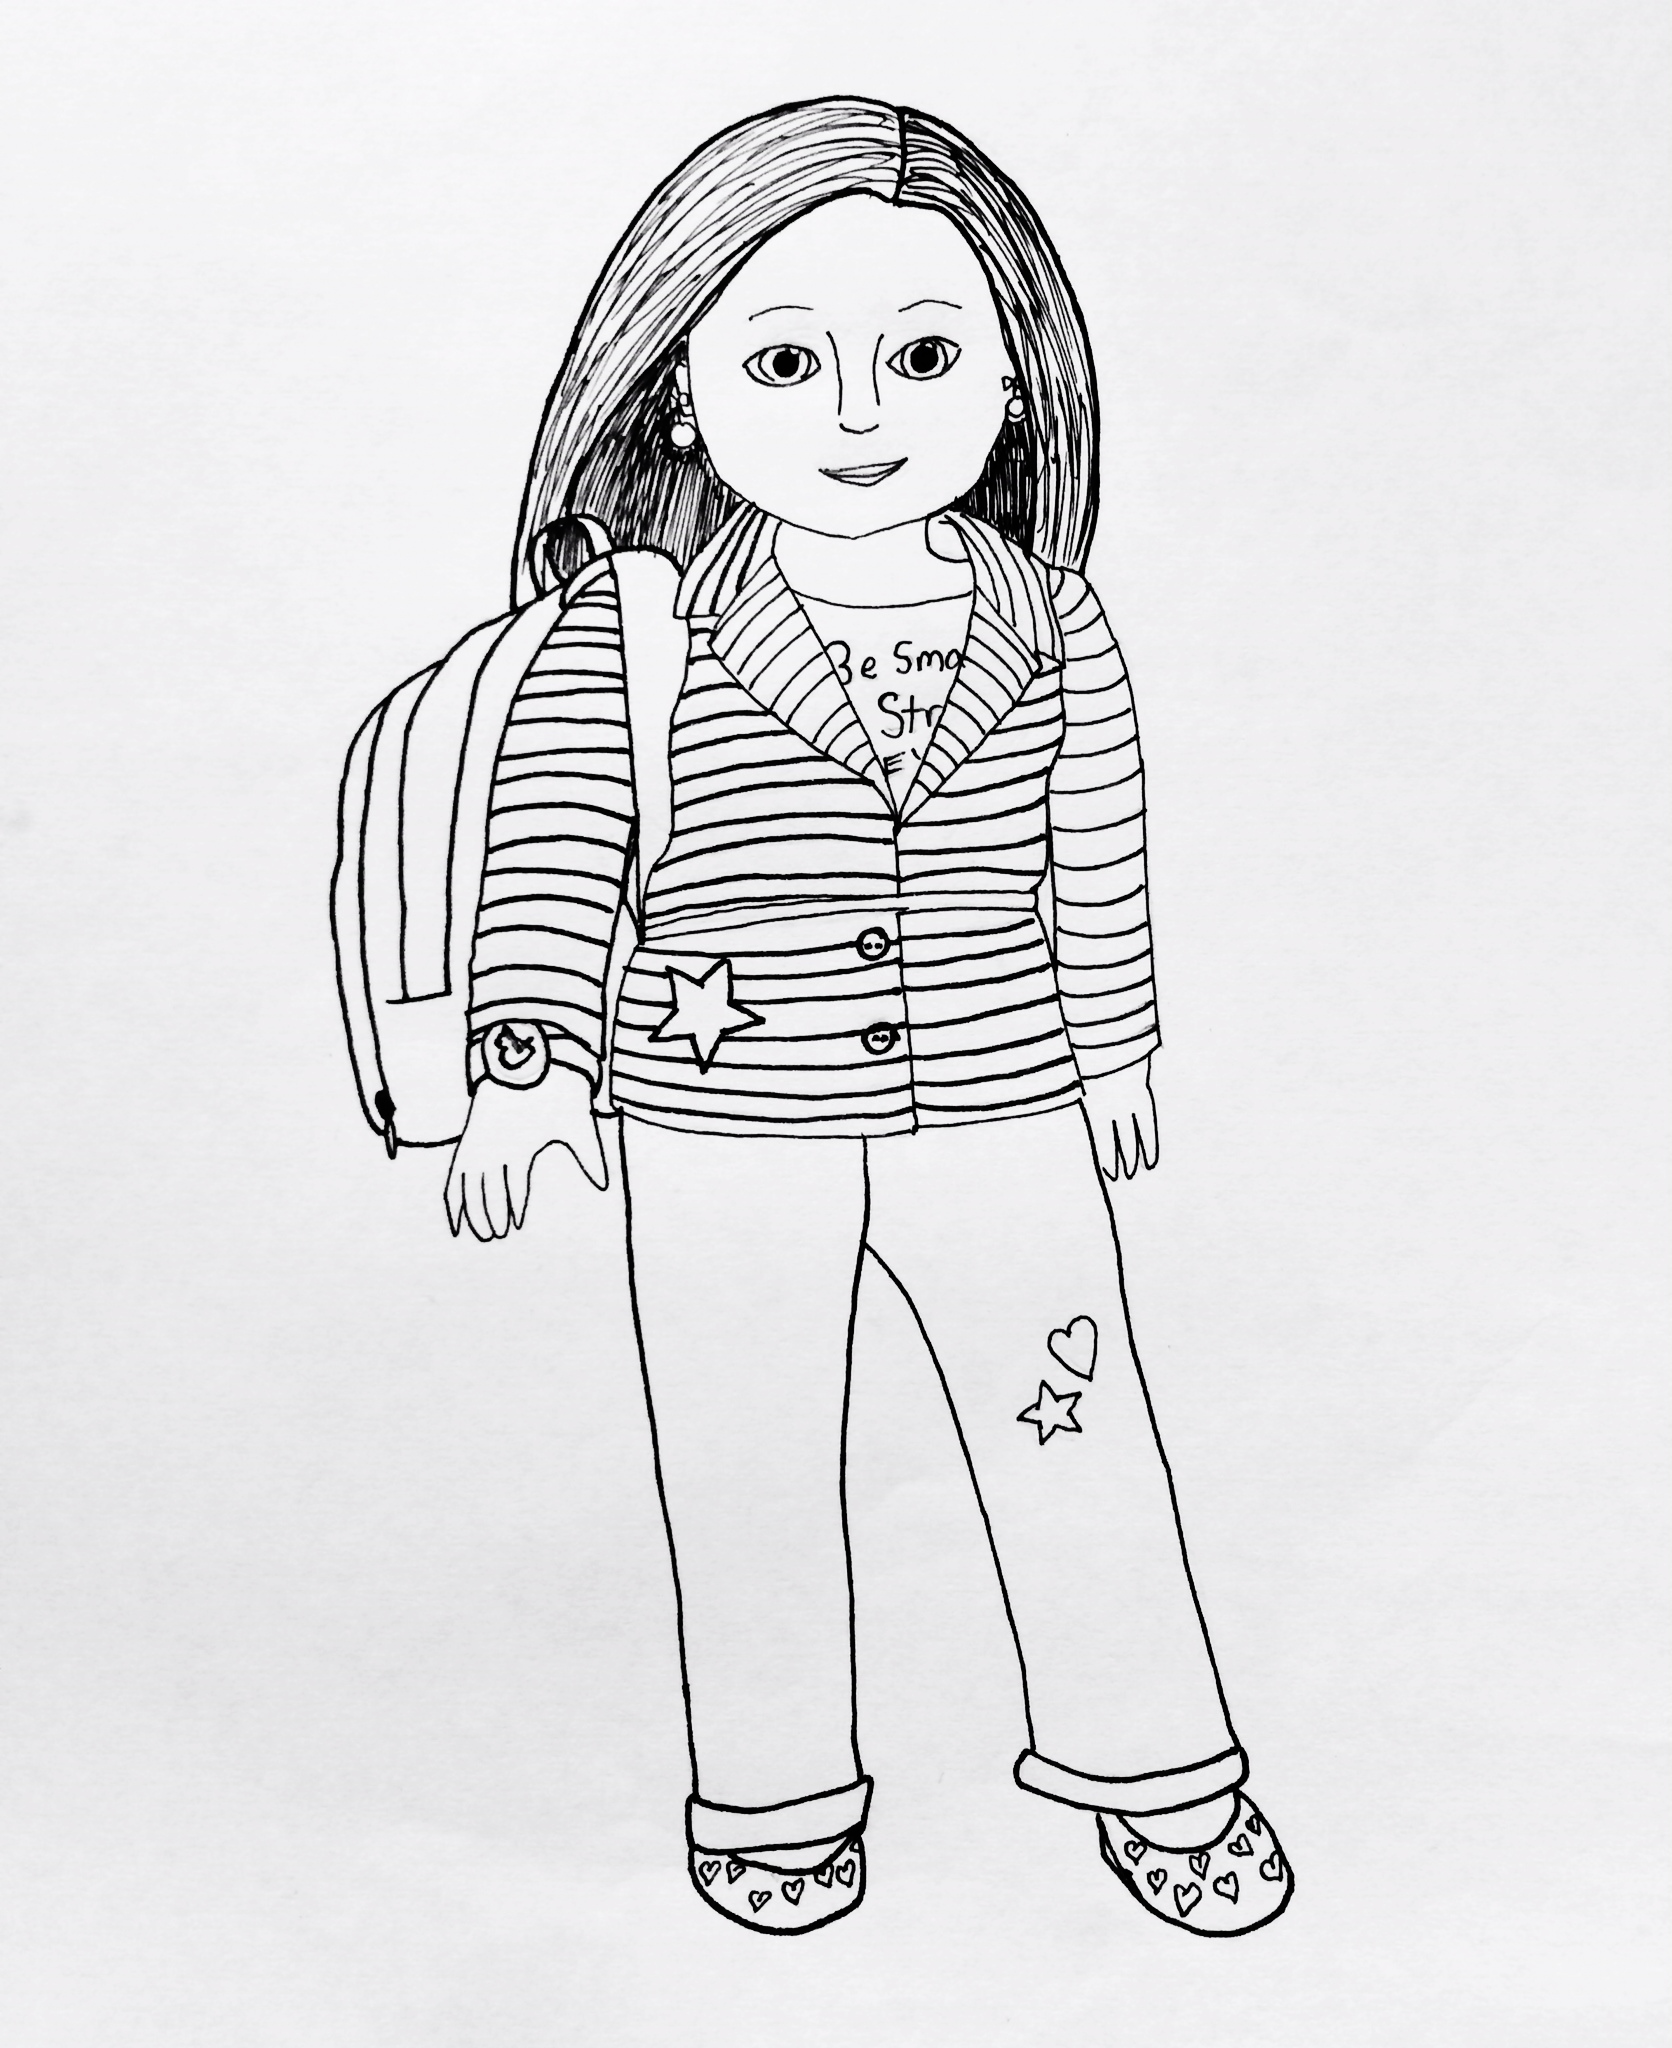 American girl doll coloring pages to download and print for Girls coloring pages to print